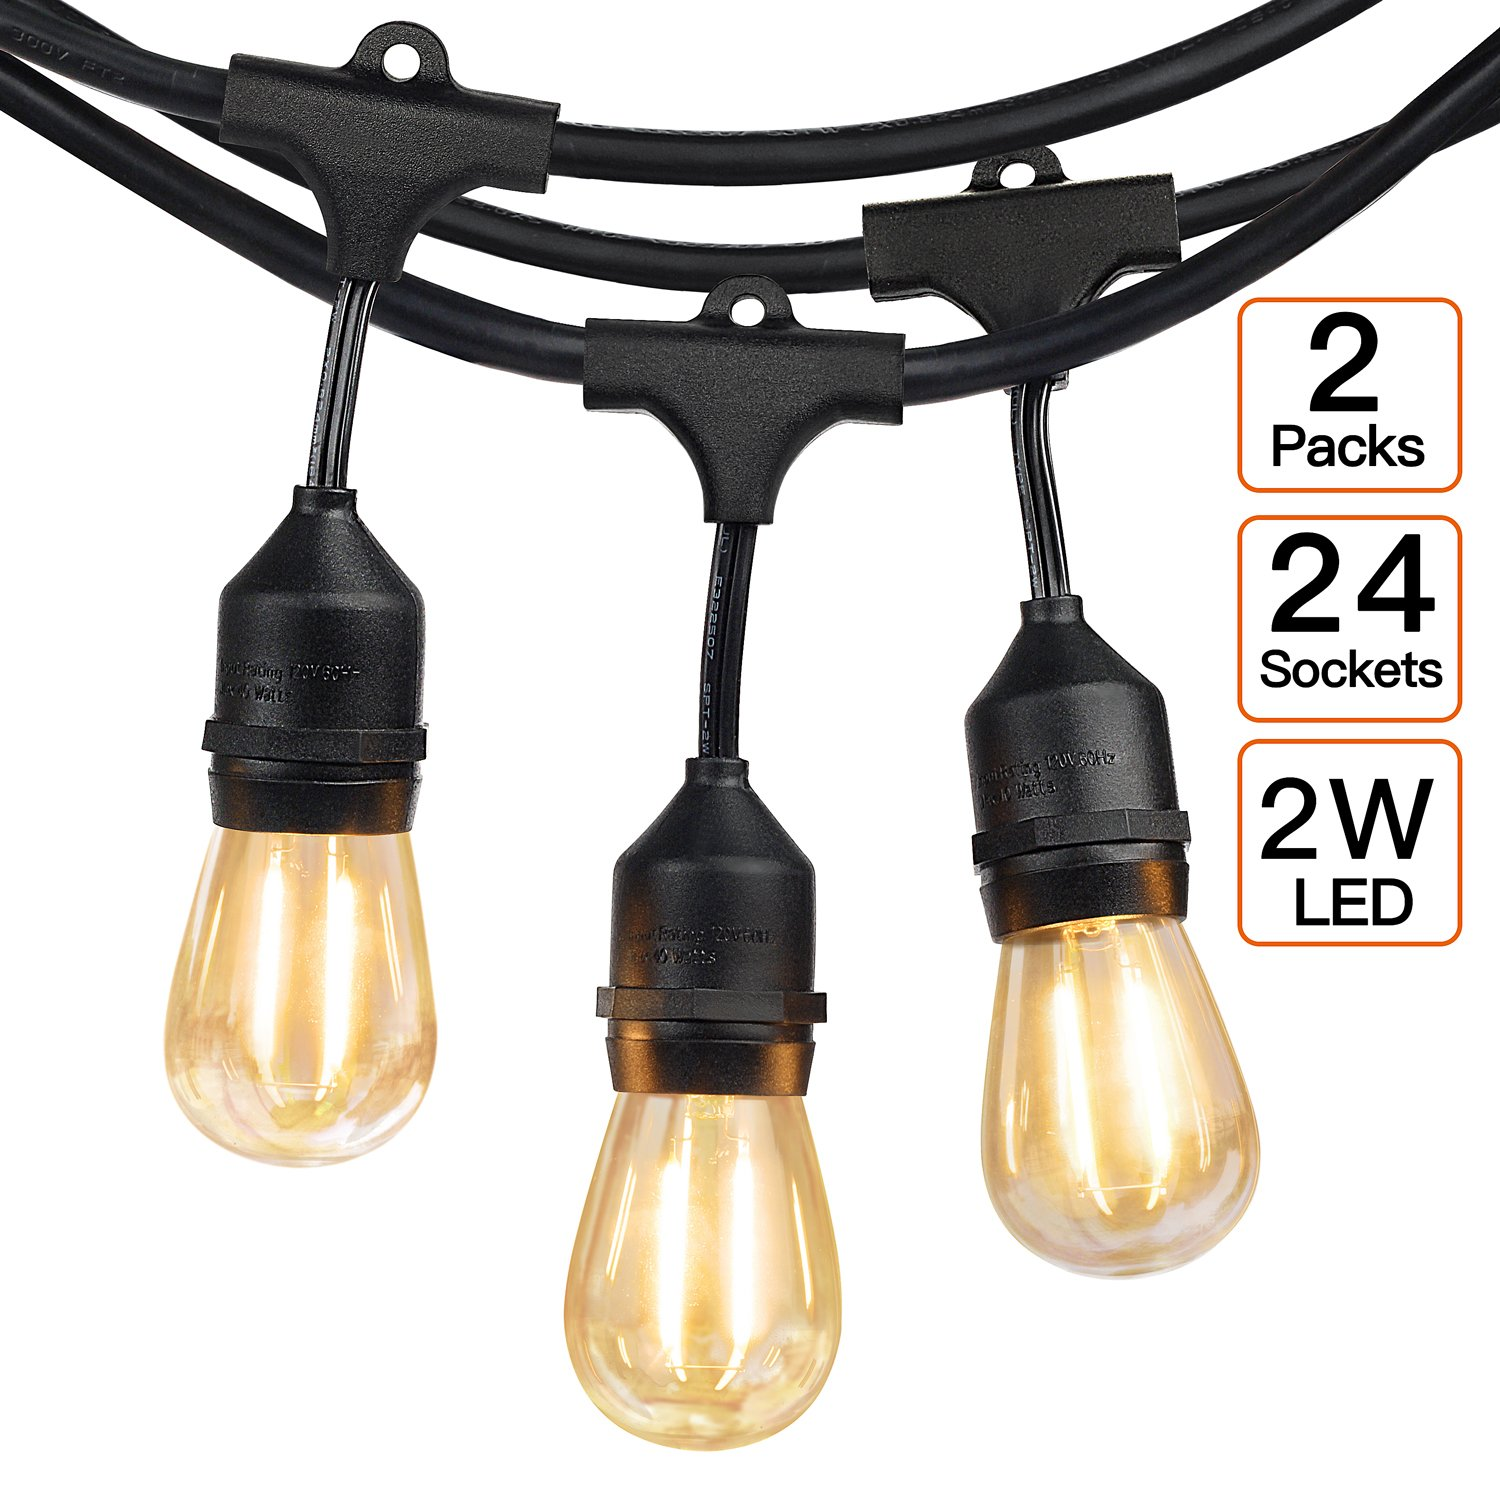 2-Pack 48Ft 24 Hanging Socket LED Outdoor String lights-2W S14 Edison Vintage Bulbs, Commercial Grade, Weatherproof, Perfect for Market Cafe Umbrella Bistro Patio Garden Backyard Party Deck-Black